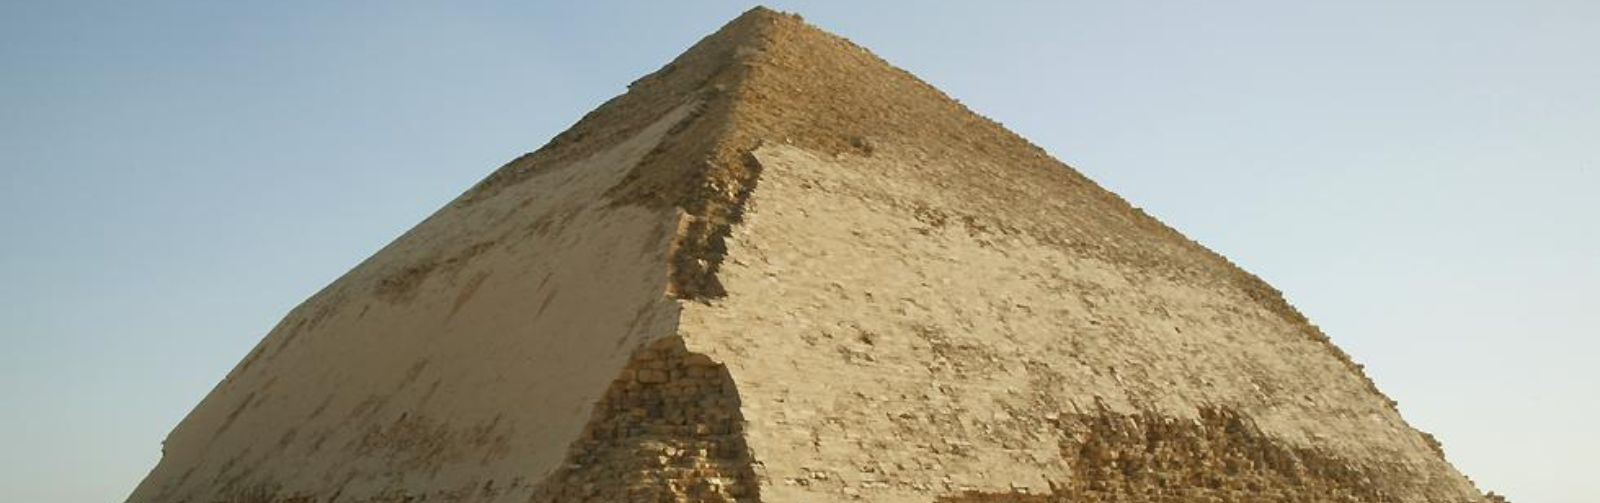 Dahshur Pyramids | the bent Pyramid and the red Pyramid